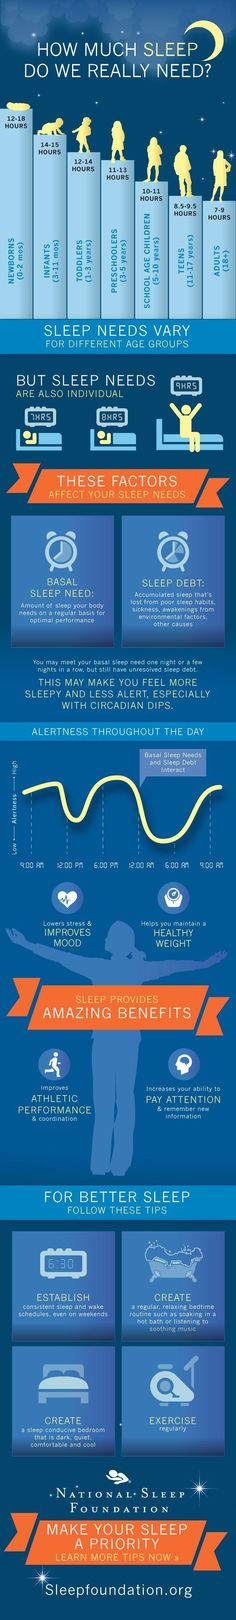 Sleep | Tipsographic | More sleep tips at http://www.tipsographic.com/ get better sleep, sleeping tips